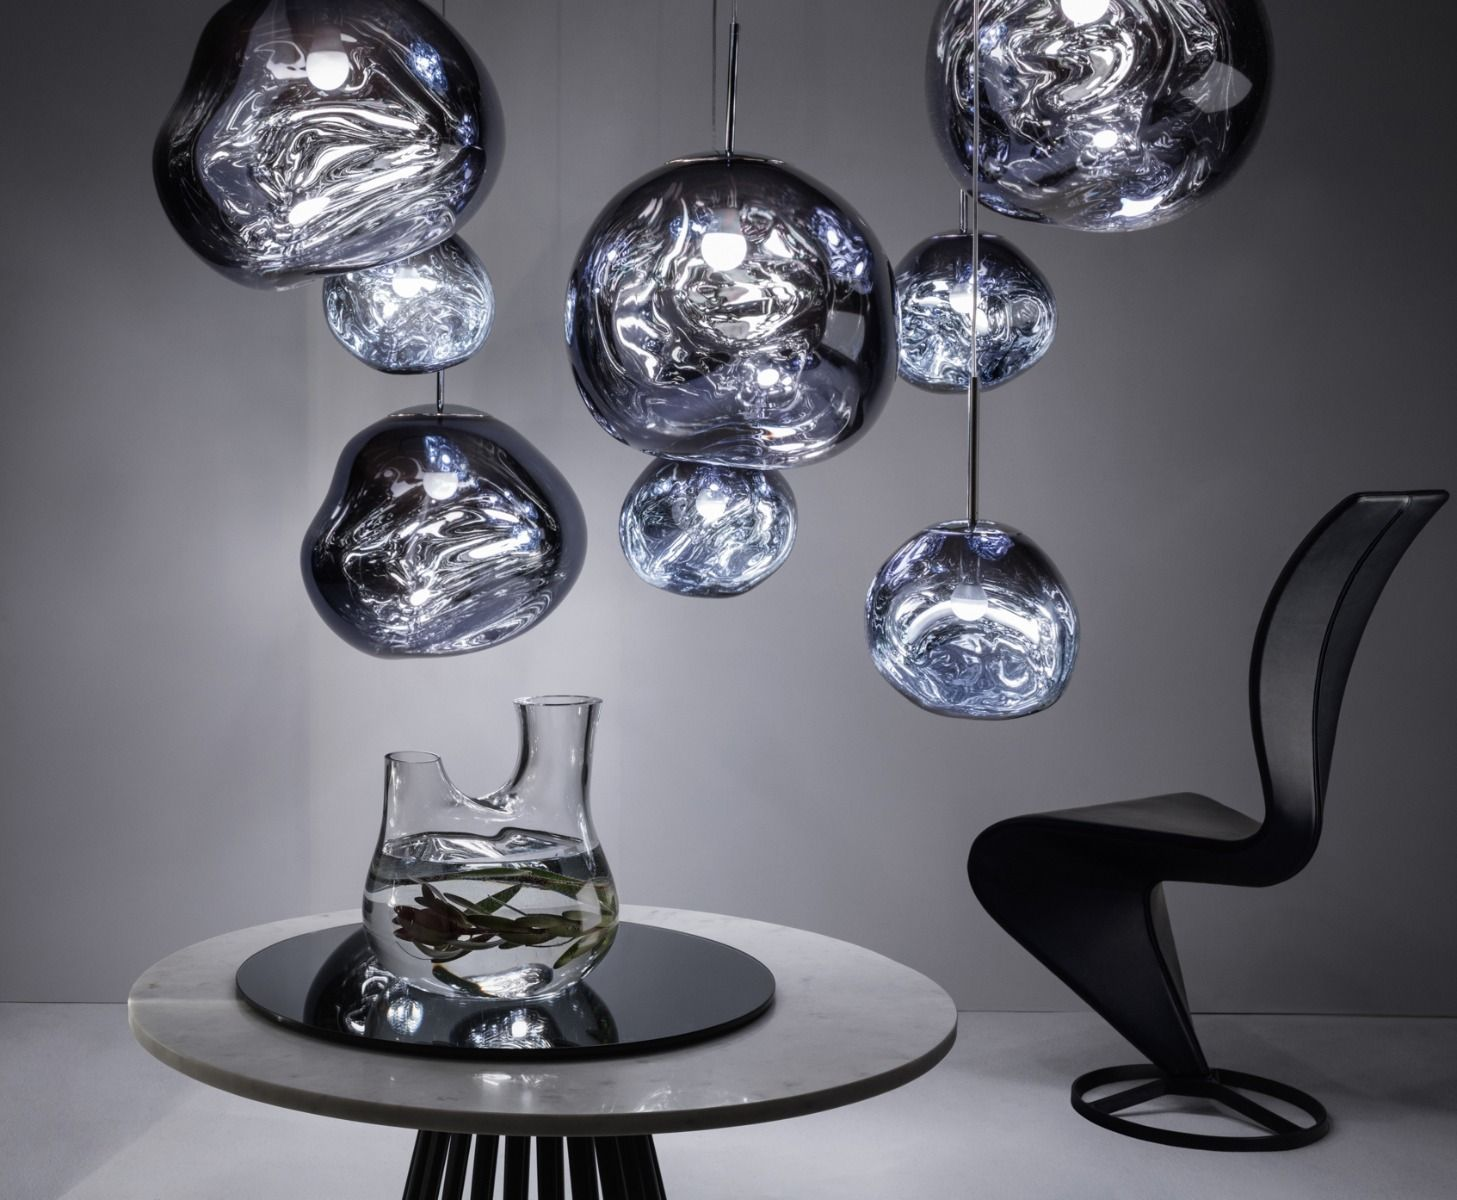 Melt Pendant Smoke Lighting Tomdixon Net Tom Dixon Melt Pendant Lamp Pendant Light